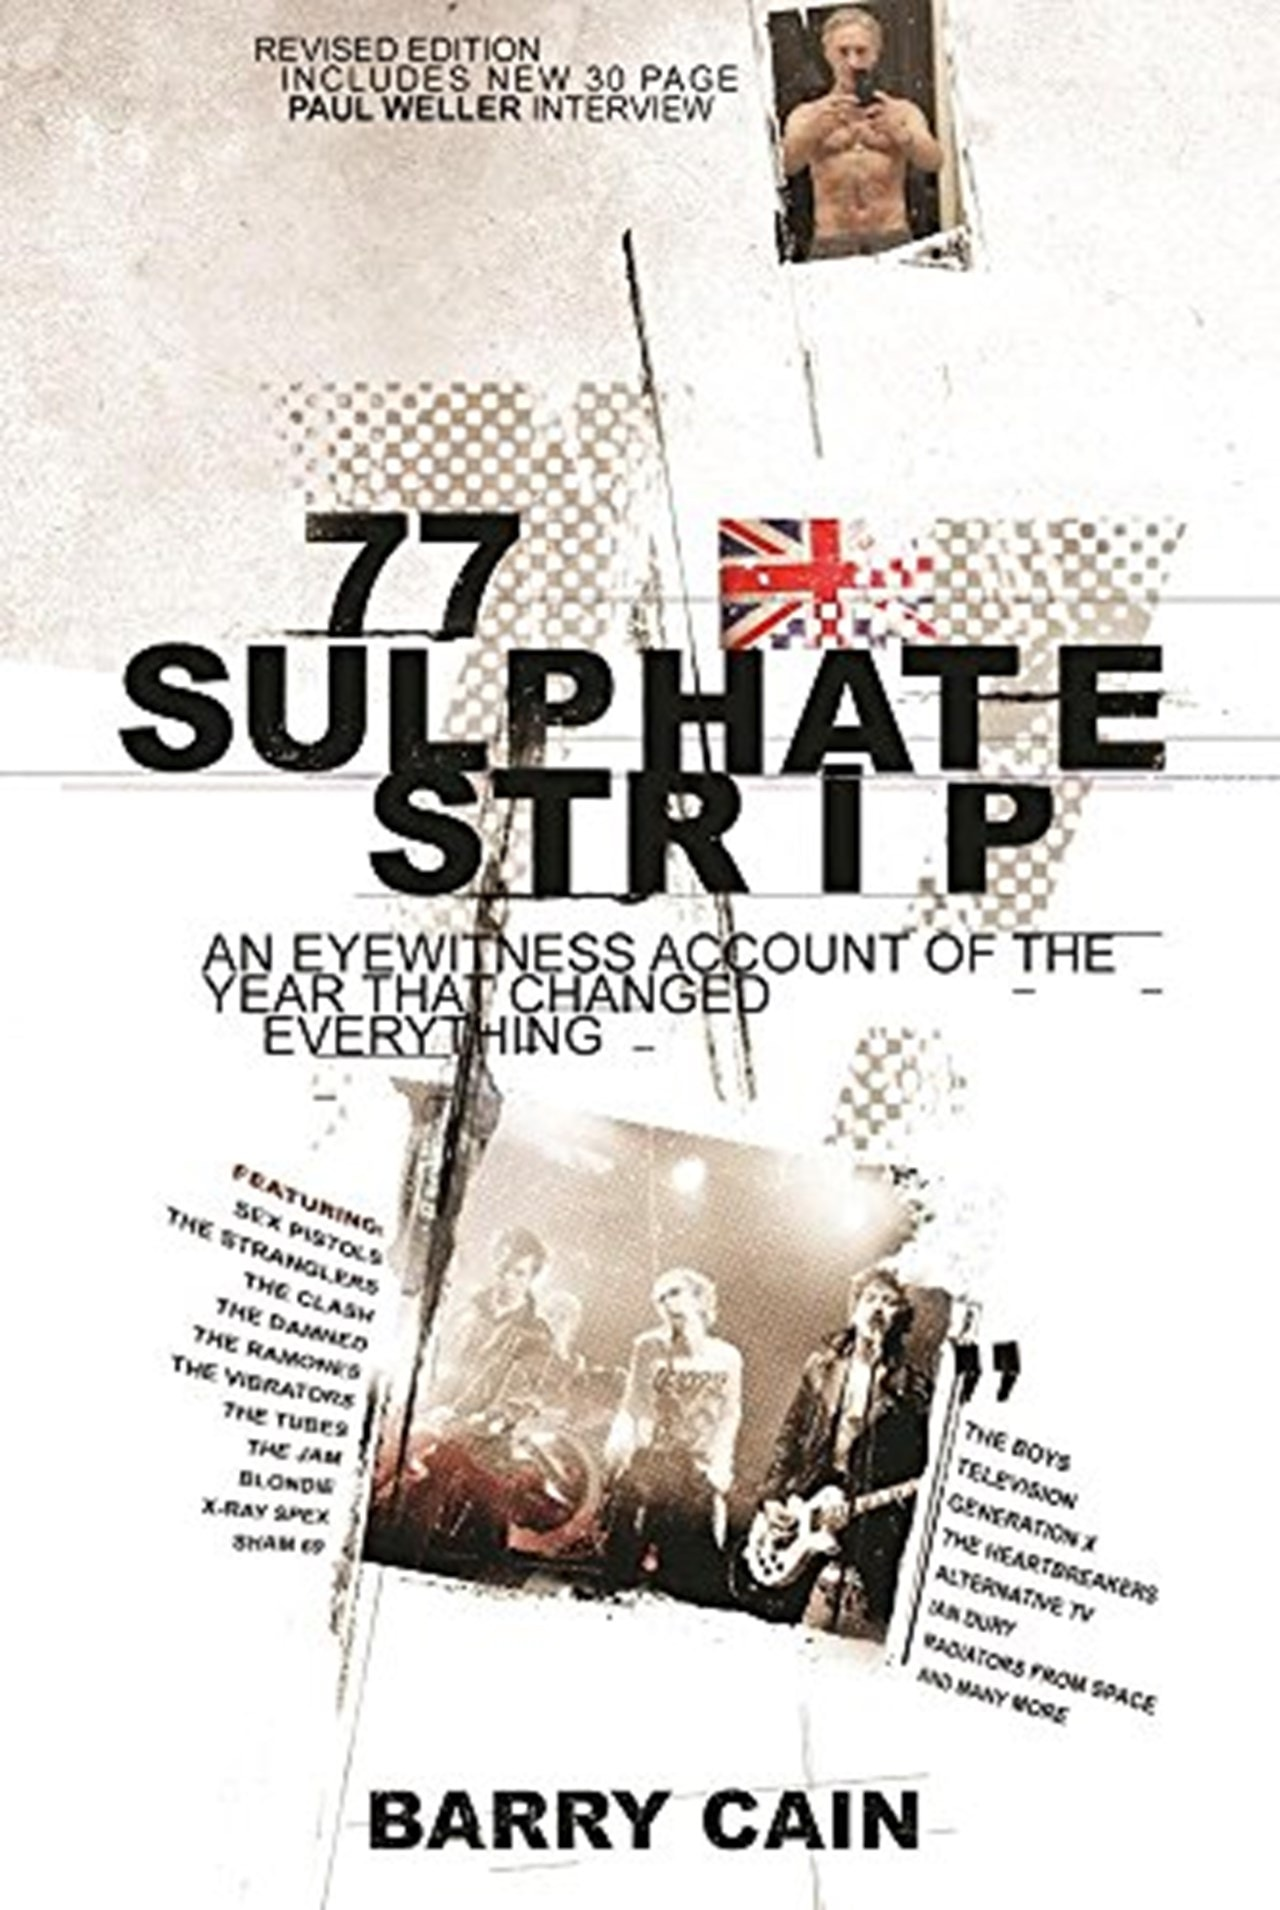 77 Sulphate Strip - 1